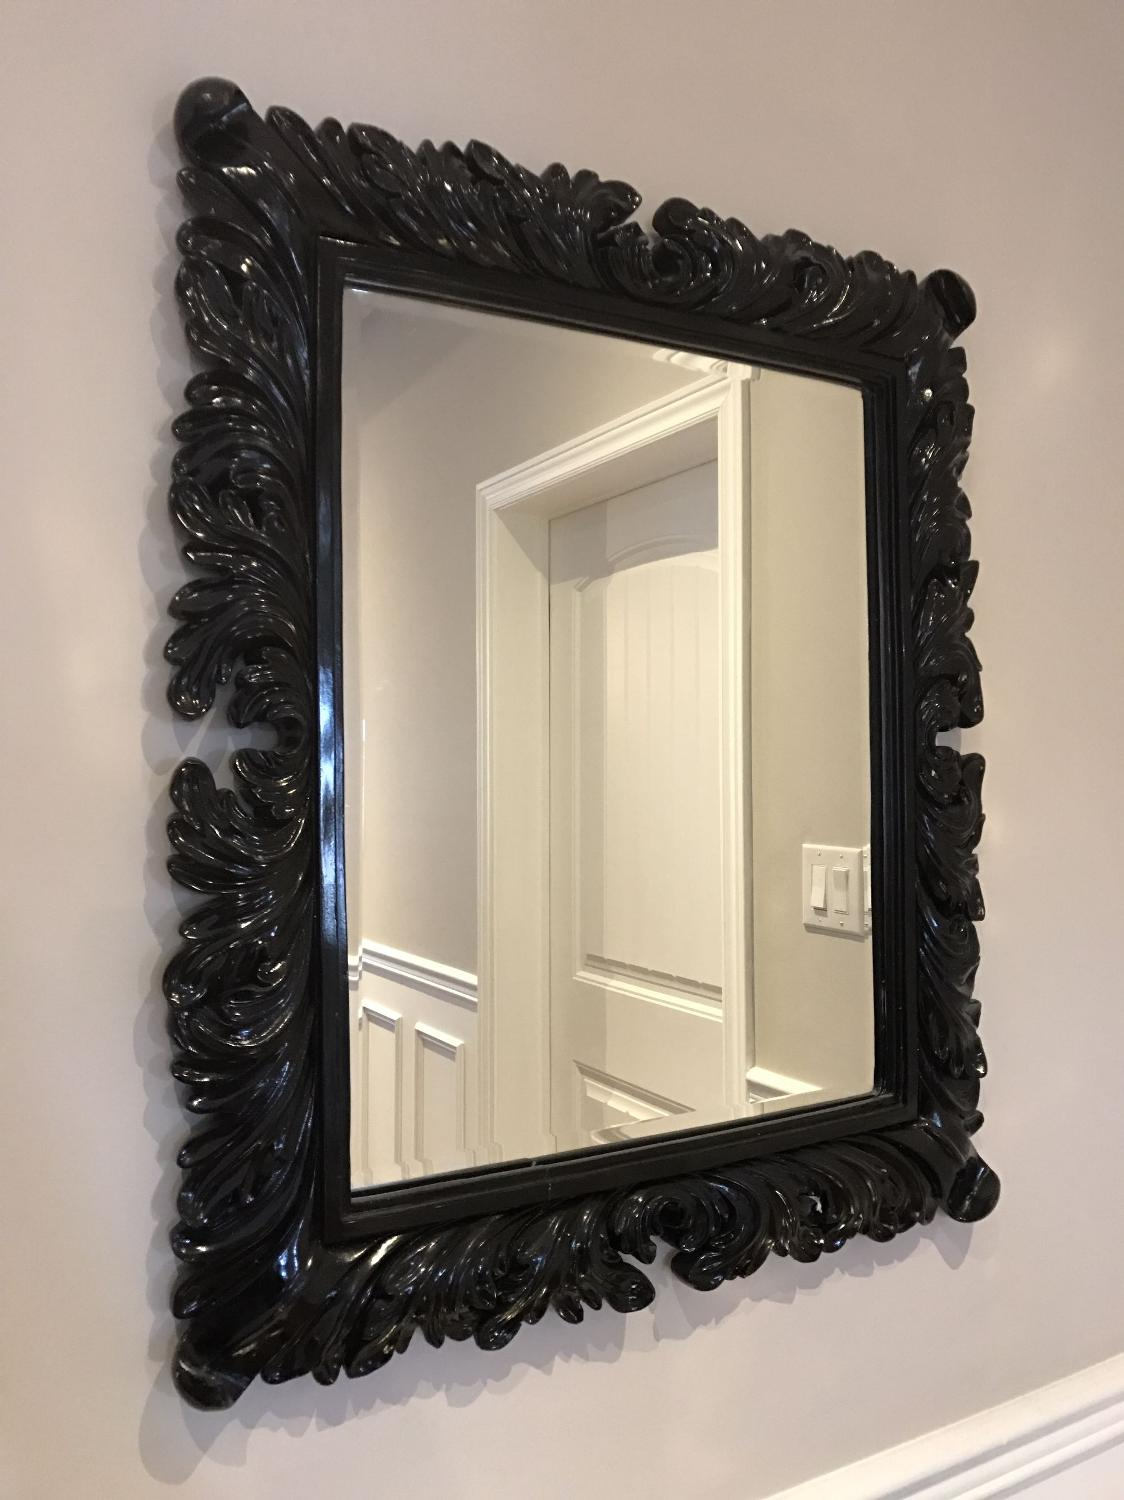 Best black baroque framed mirror for sale in barrie for Baroque mirror canada